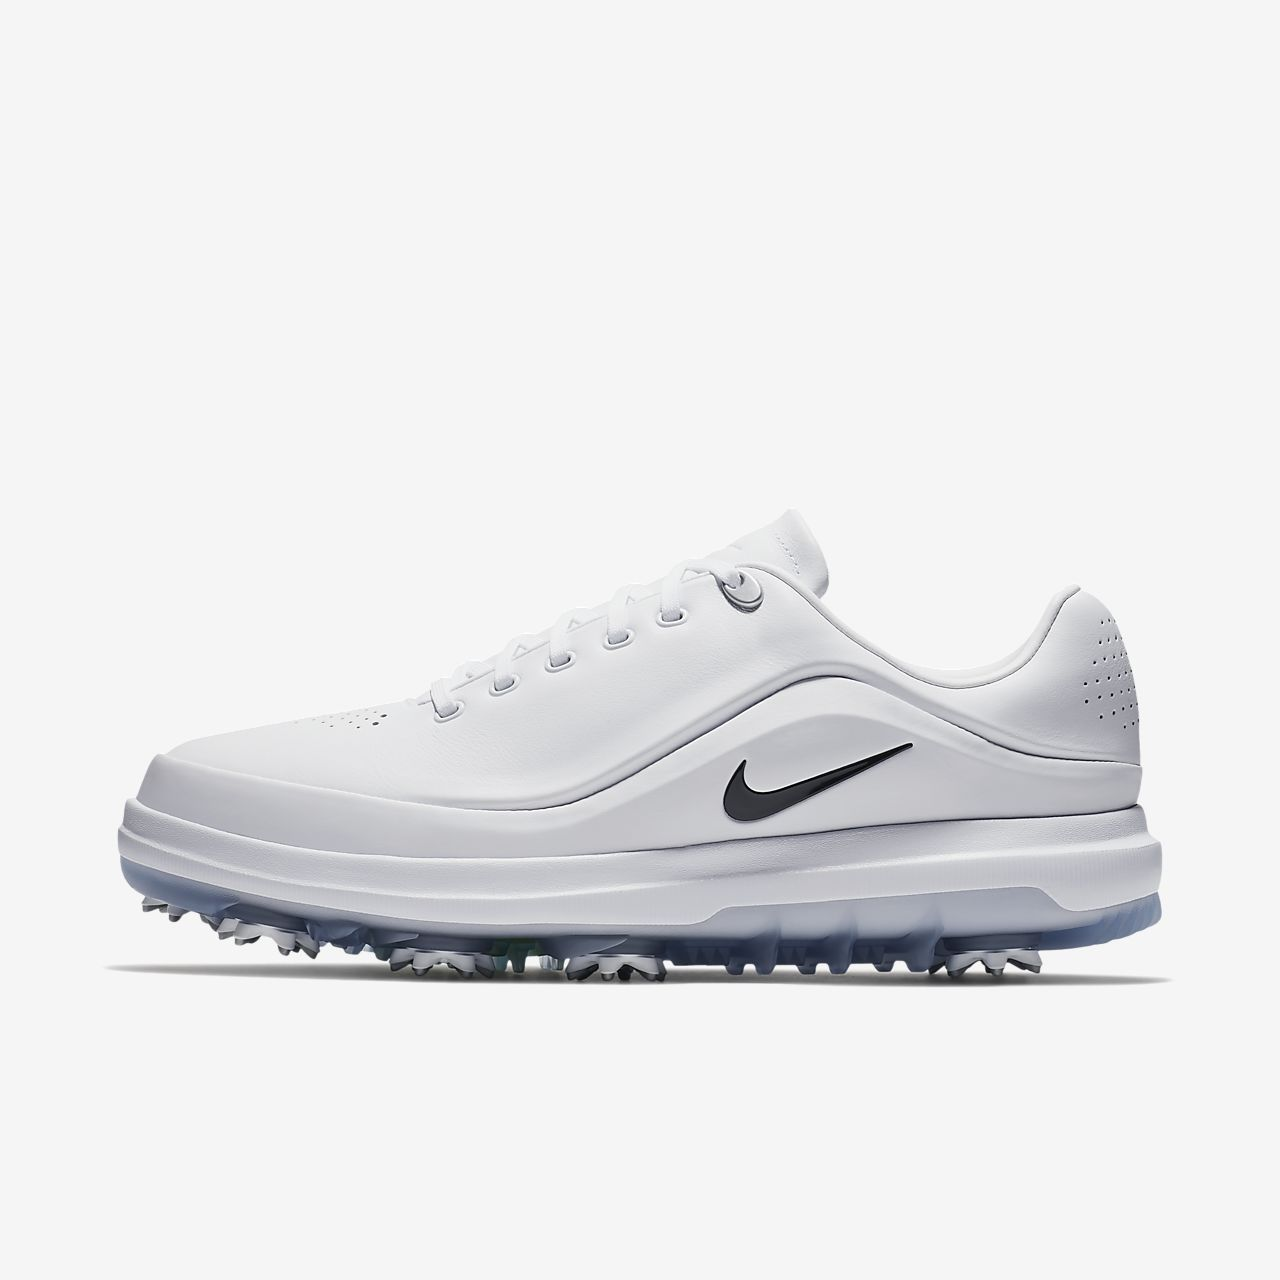 nike air zoom precision mens golf shoe nikecom